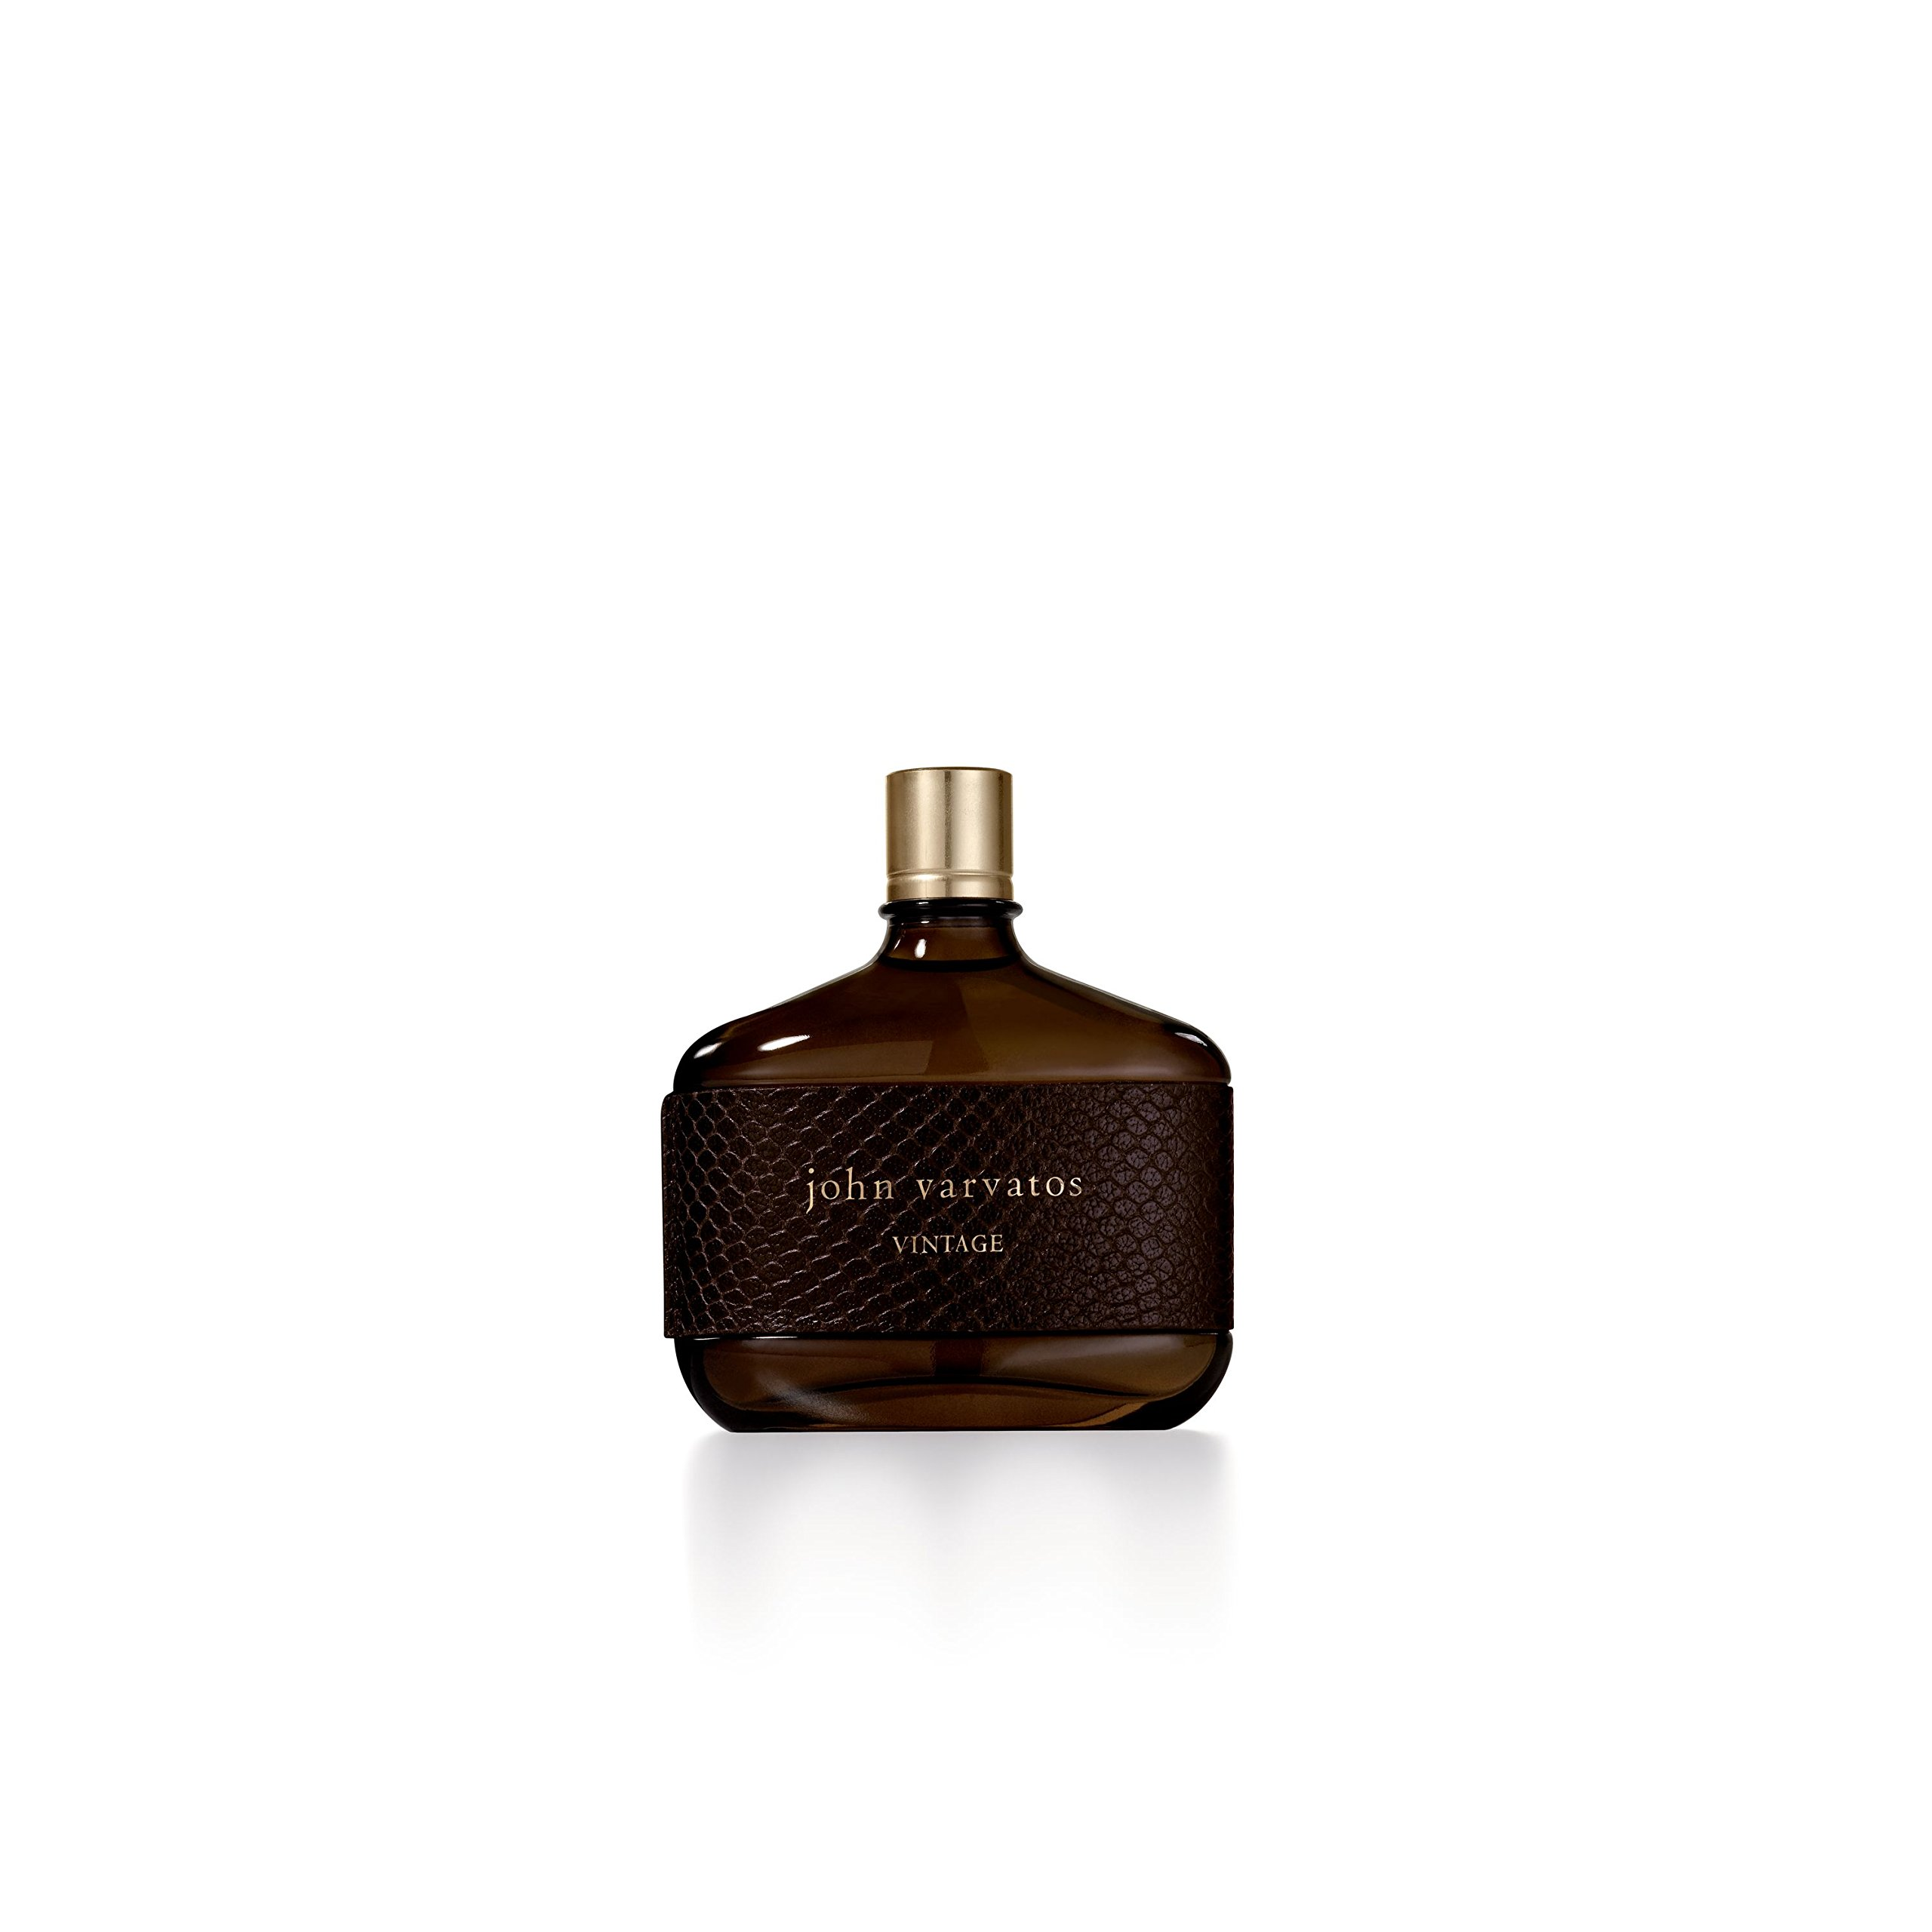 John Varvatos Vintage Eau de Toilette Spray, 4.2 oz.